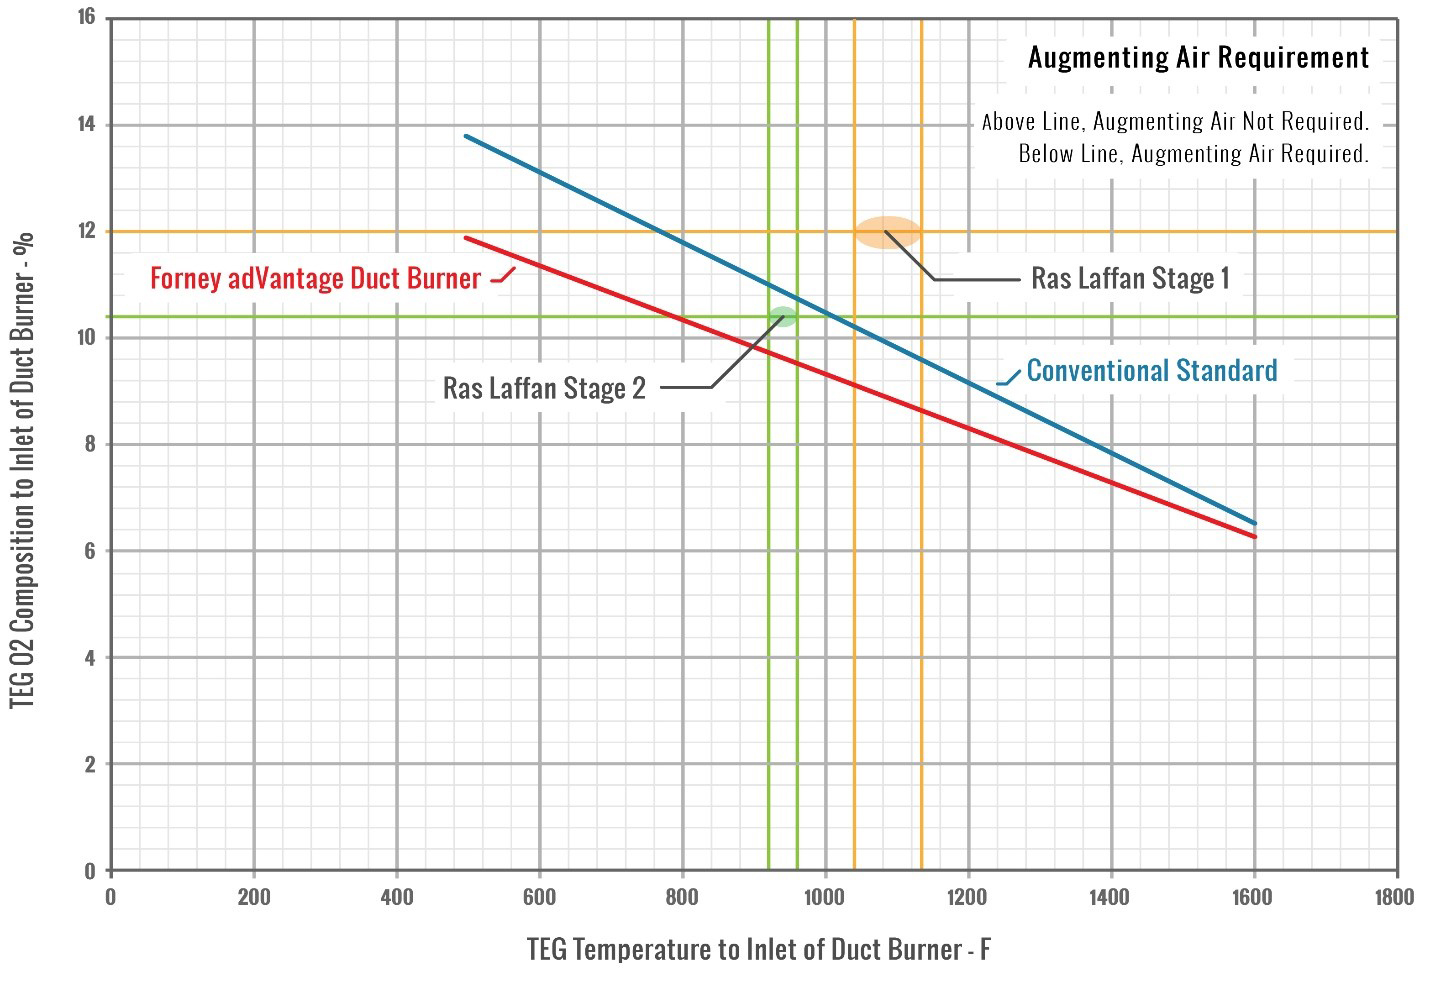 Augmenting Air Requirement Based on Ras Laffan TEG Conditions